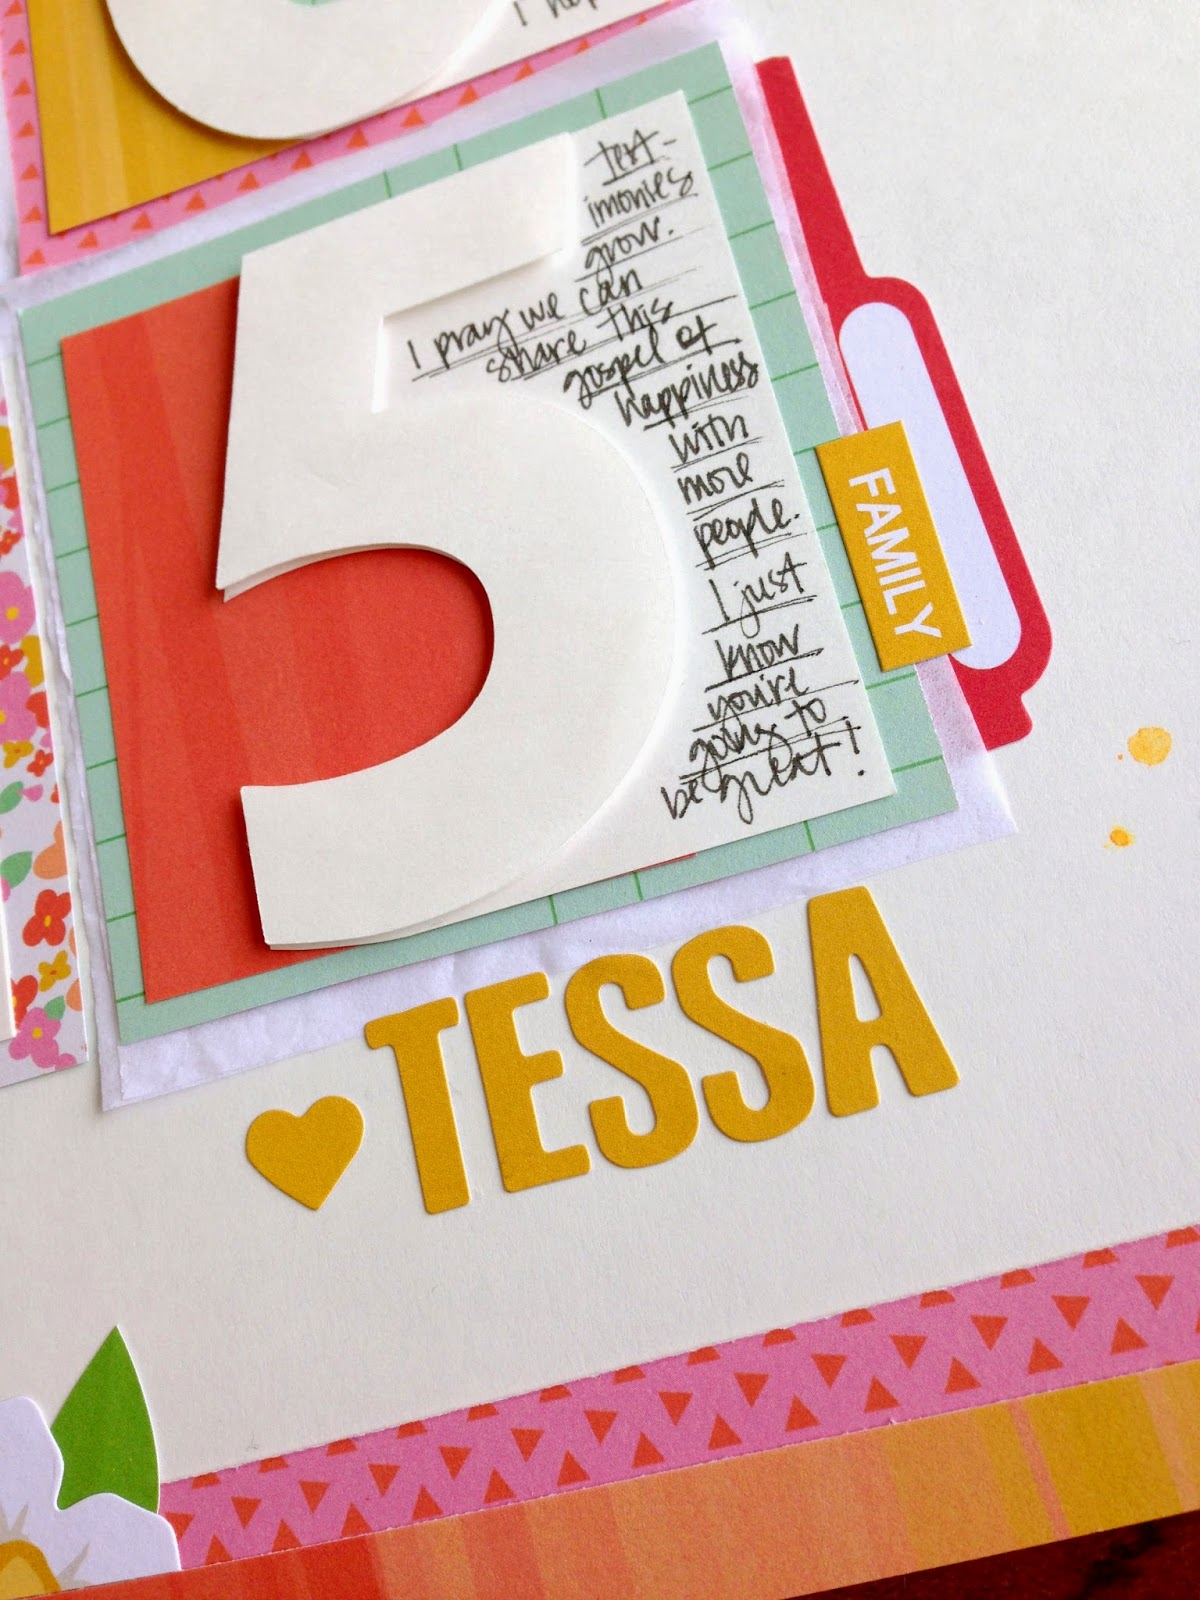 Tessa Buys Chickaniddy Crafts 2015 Layout close-up 4